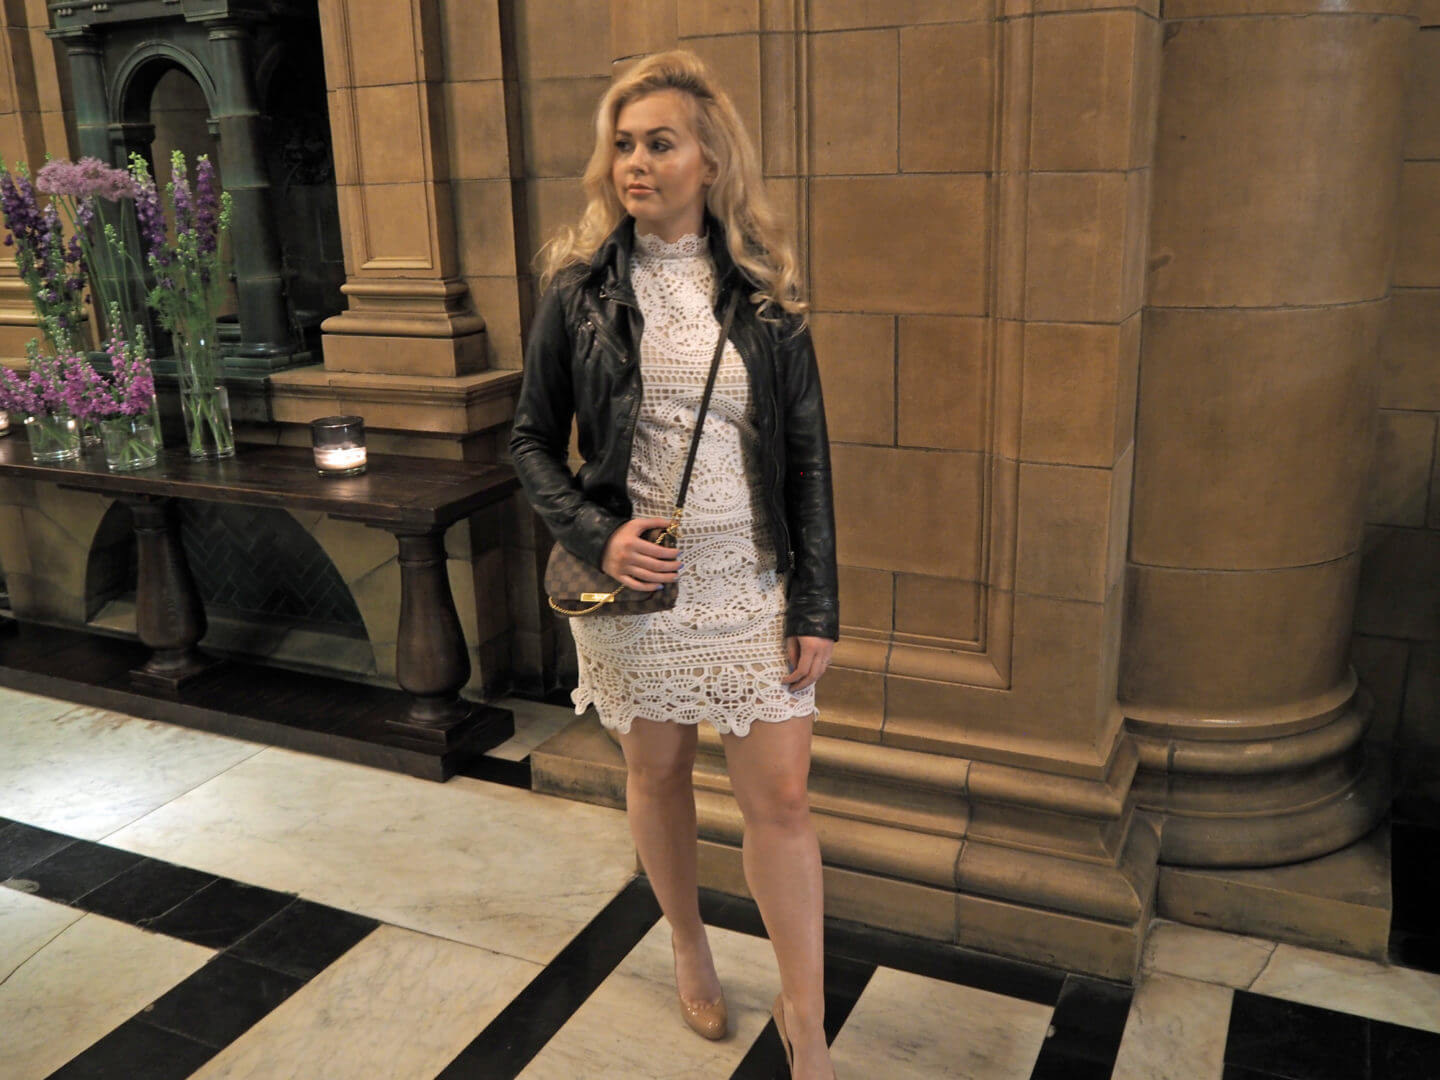 Boohoo Dress, All Saints Leather Jacket, Louis Vuitton Bag, Christian Louboutin Shoes